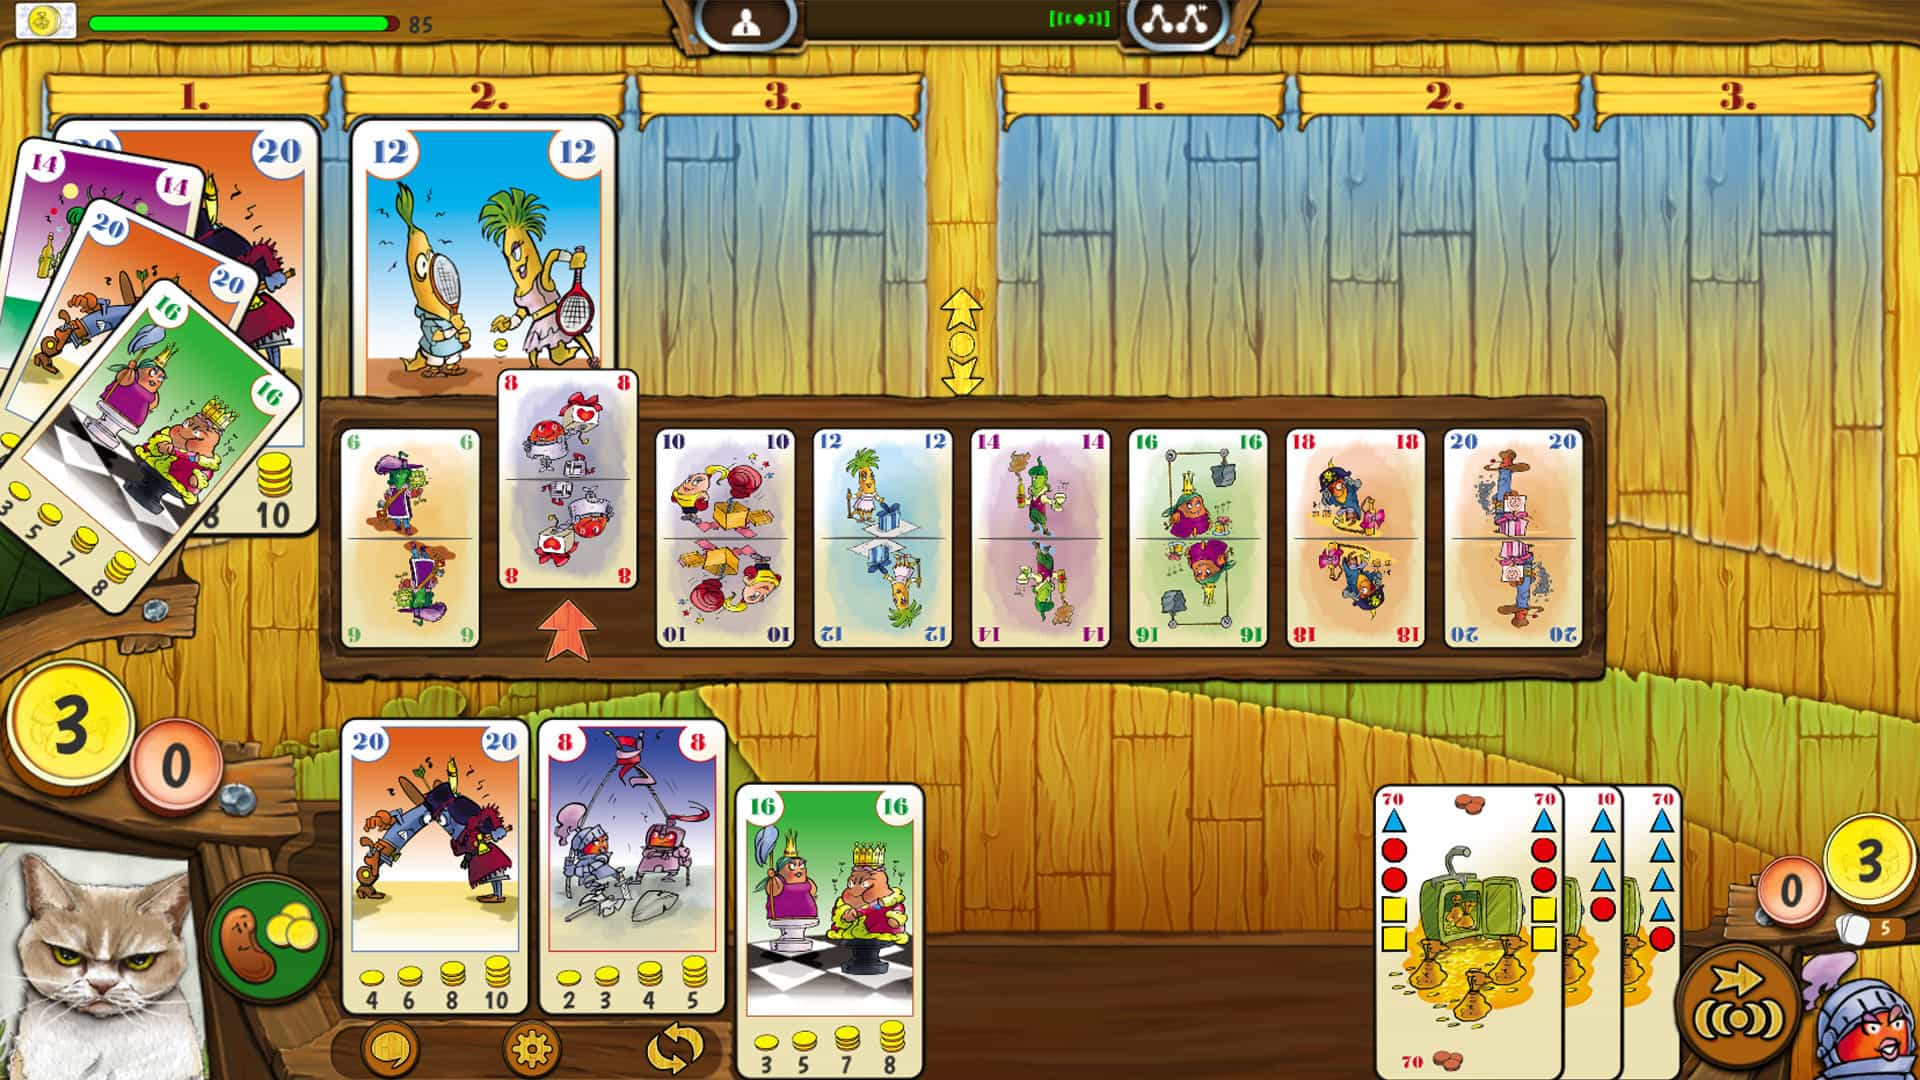 Bohnanza The Duel in game view (2 player card game)